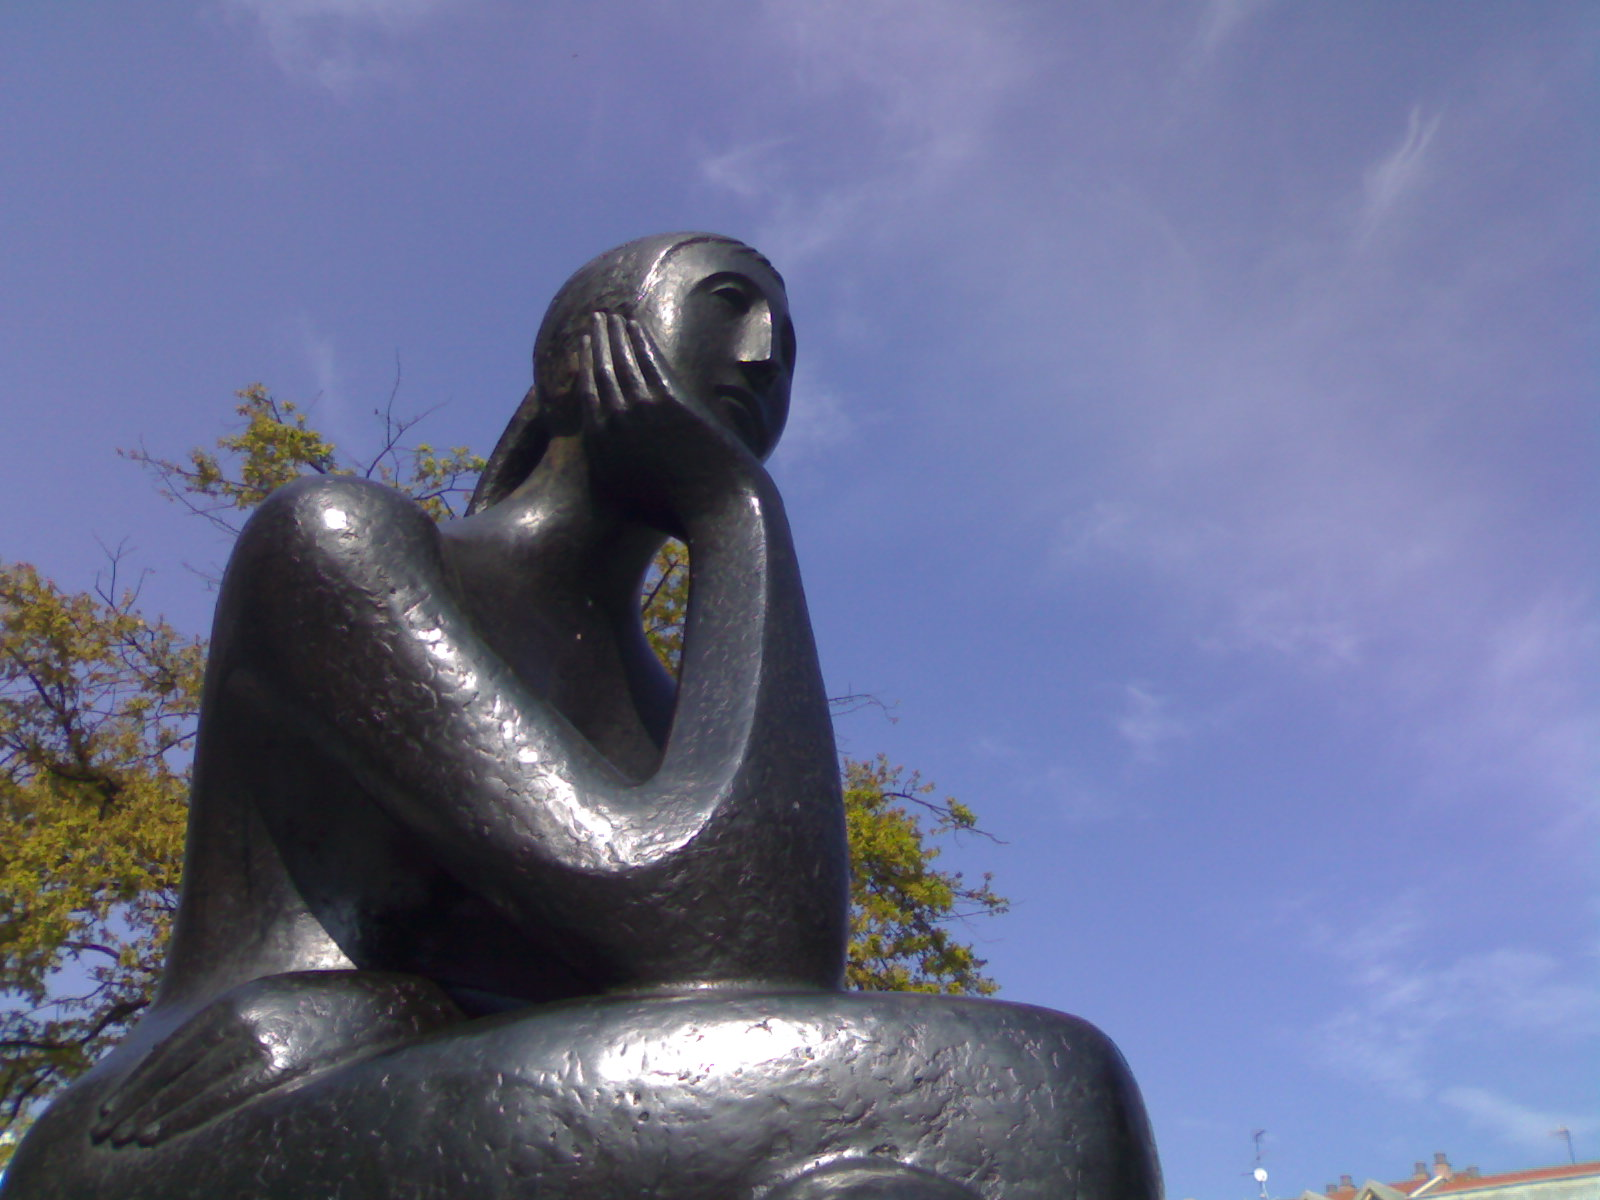 http://upload.wikimedia.org/wikipedia/commons/8/81/A_woman_thinking.jpg